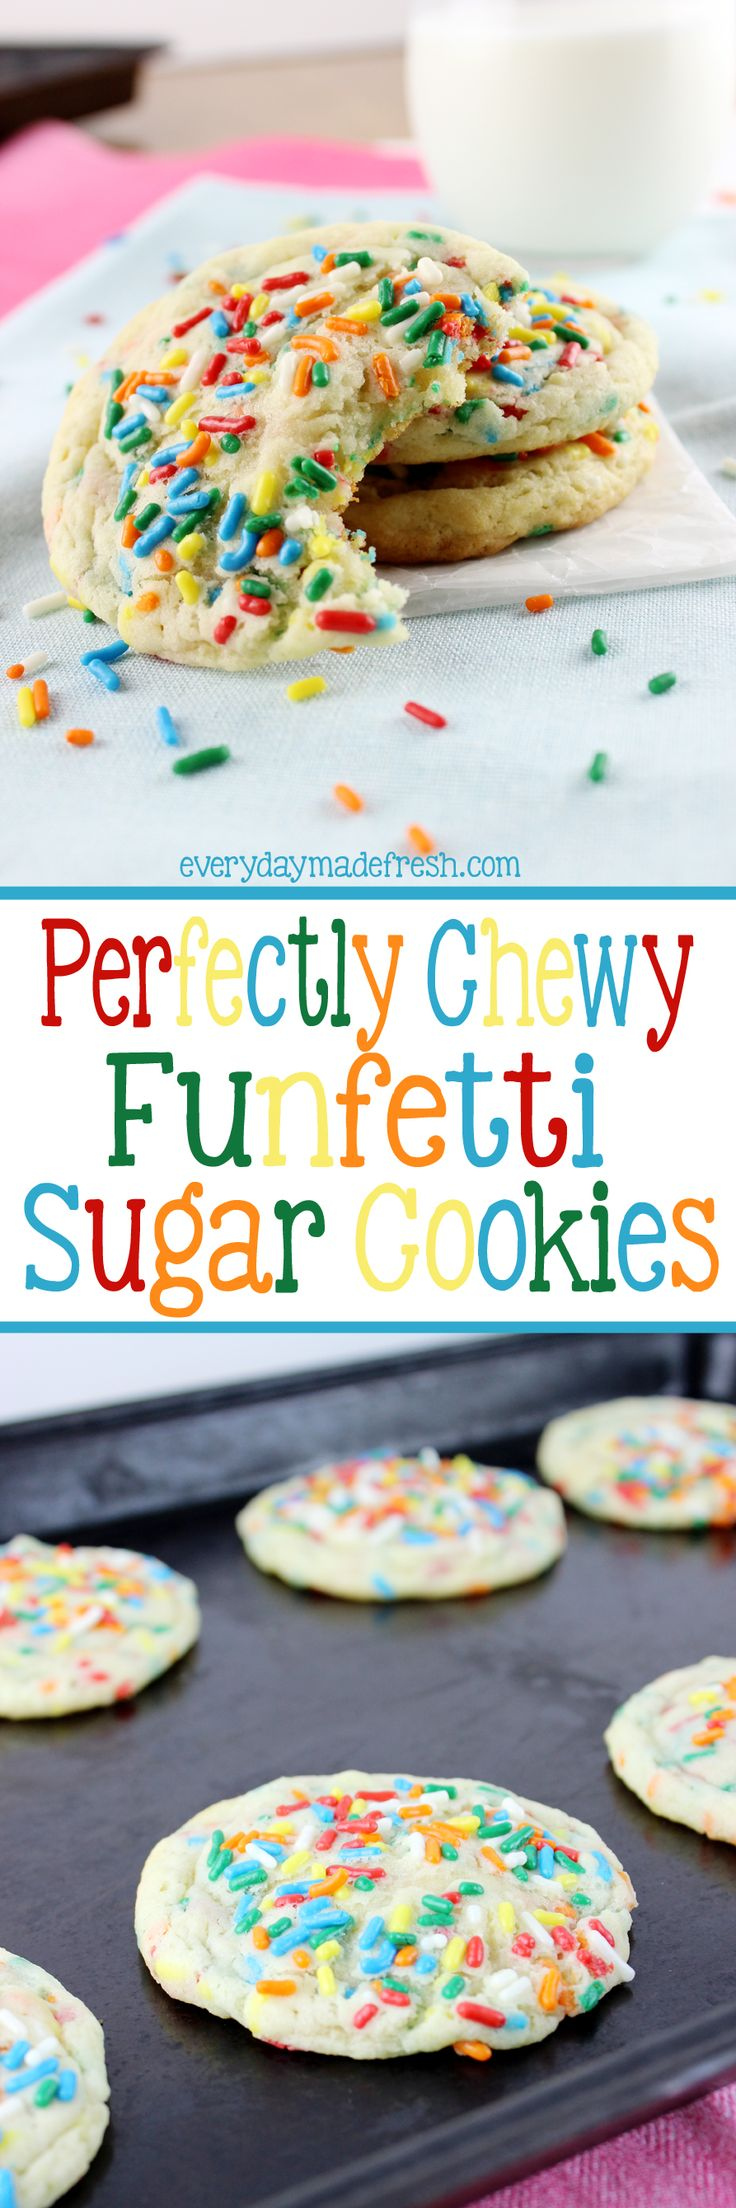 Perfectly Chewy Funfetti Sugar Cookies are perfect in texture and flavor. Hints of vanilla with the crunch of sprinkles make these cookies a favorite for everyone!   EverydayMadeFresh.com http://www.everydaymadefresh.com/perfectly-chewy-funfetti-sugar-cookies/